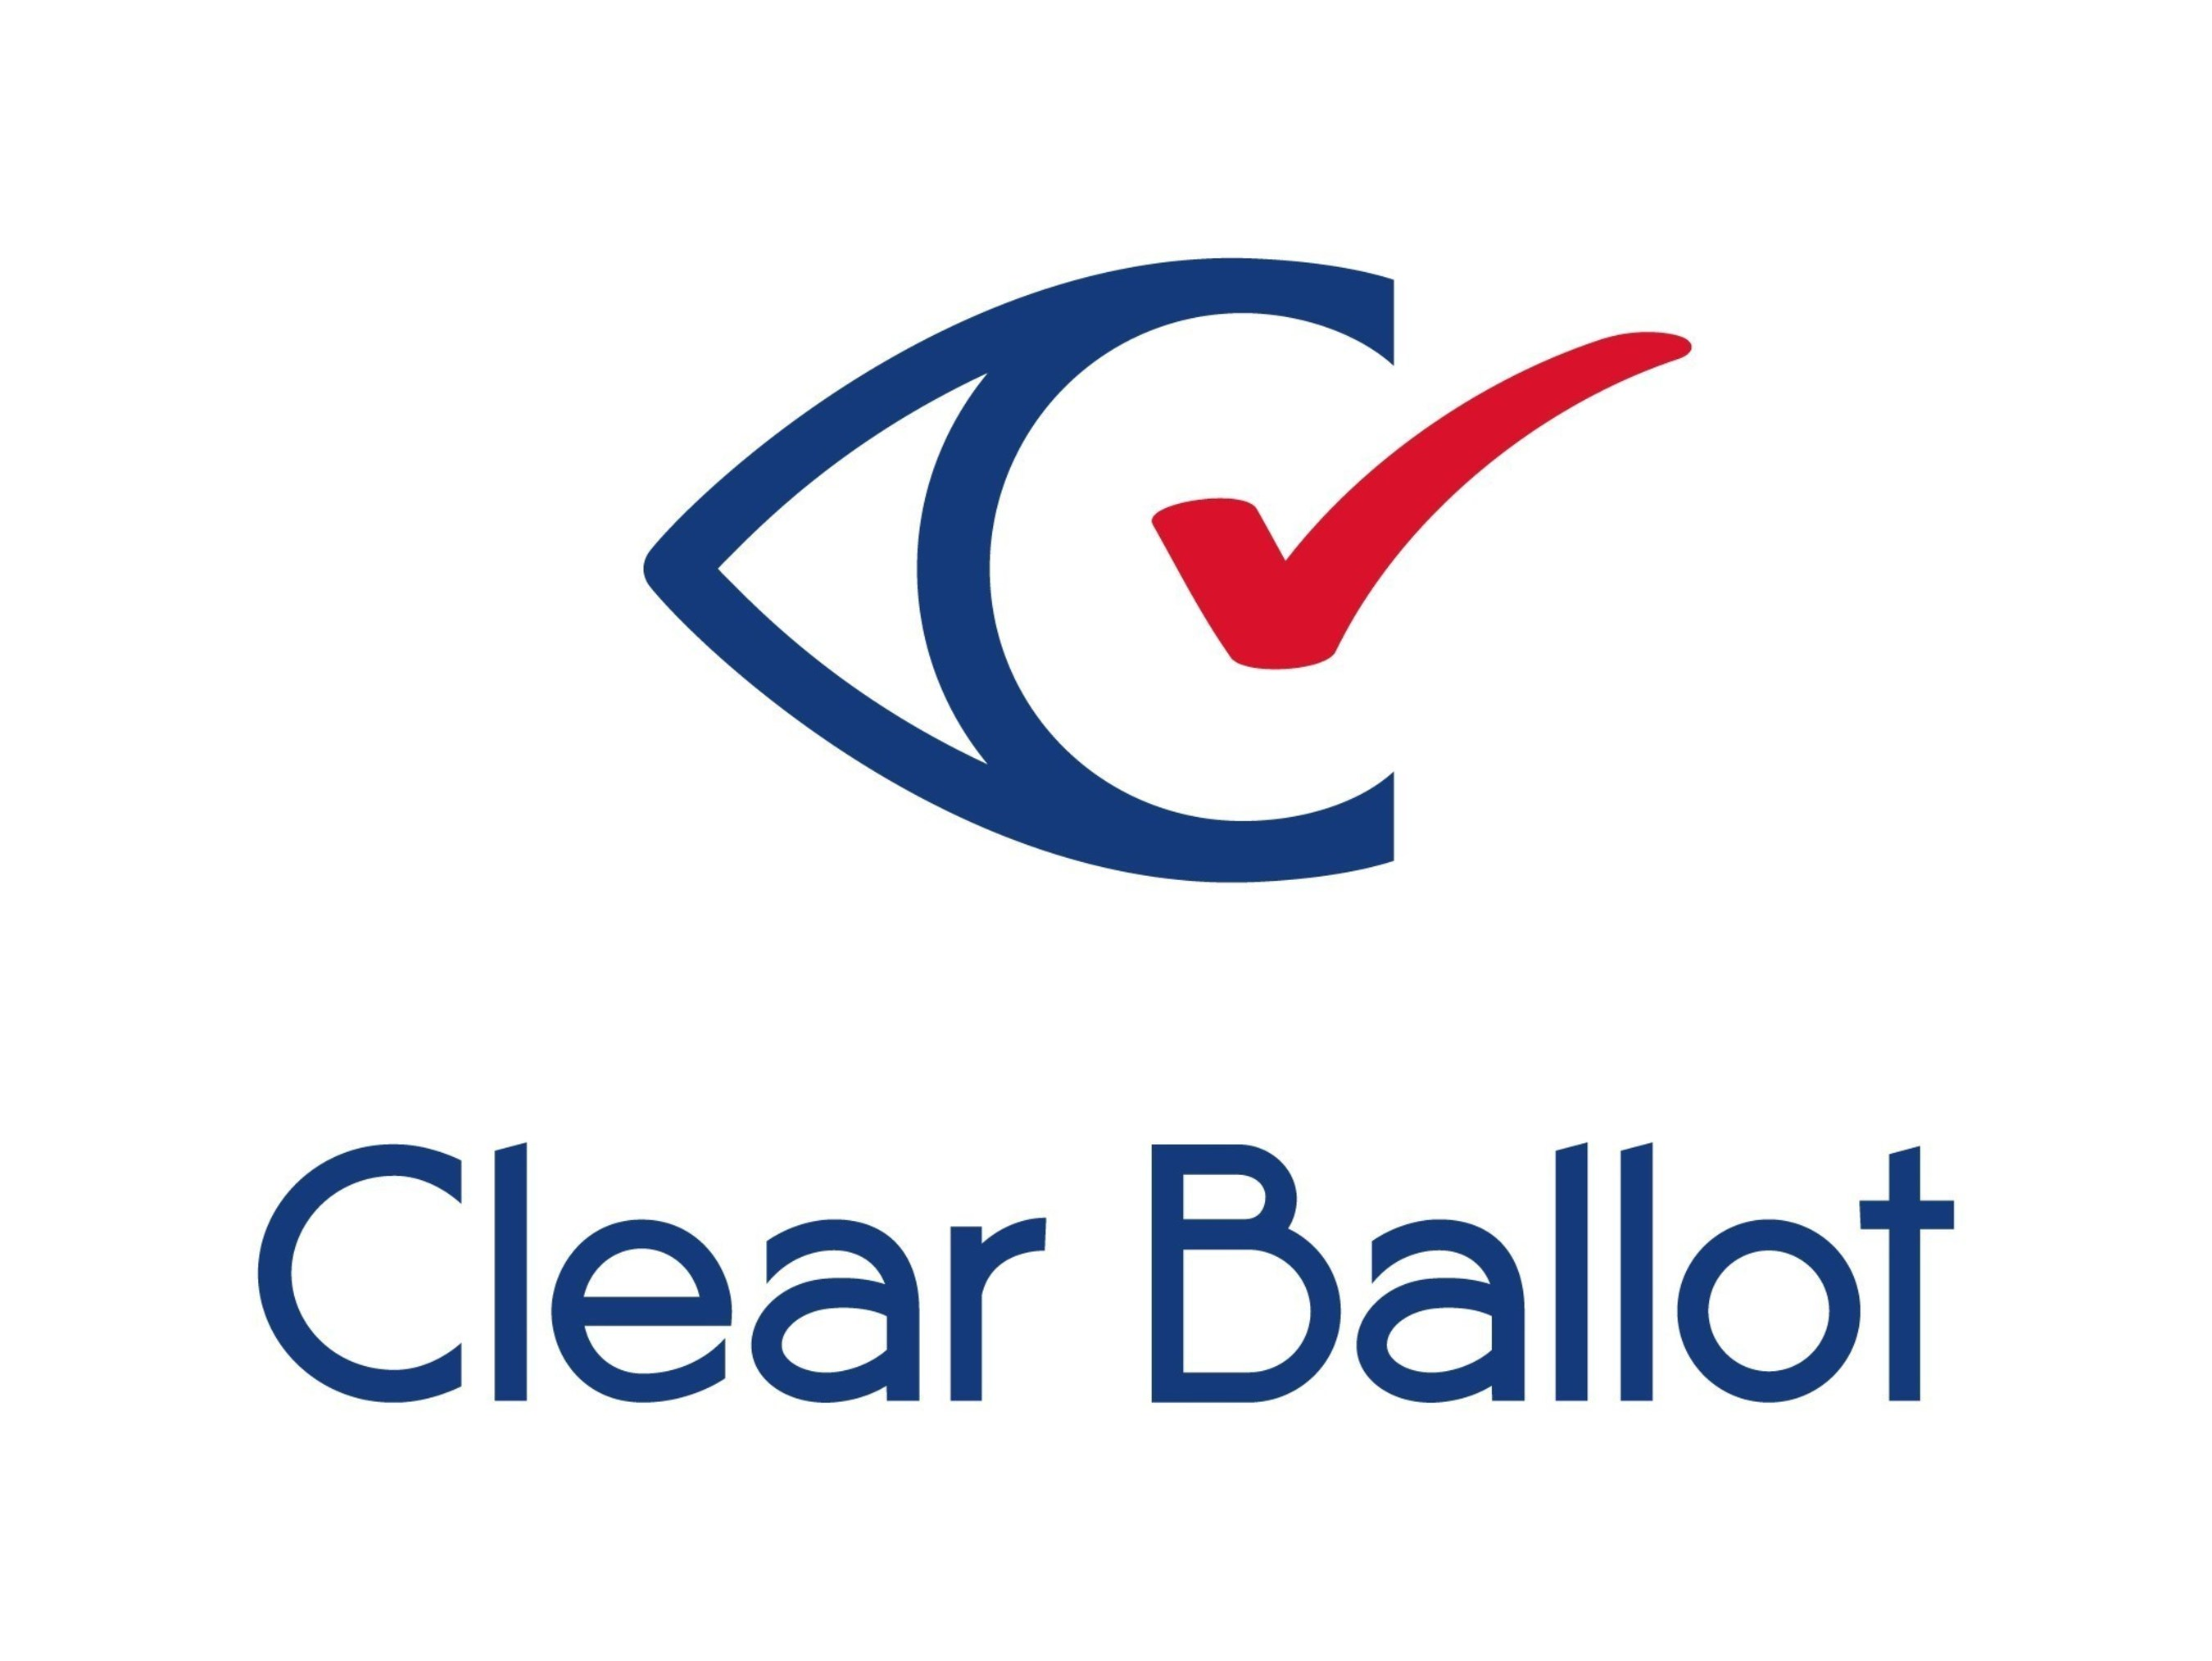 Clear Ballot to Demonstrate ClearCast Voting Unit powered by the Intel' NUC at National Conferences of Secretaries of State and State Election Directors in Washington, D